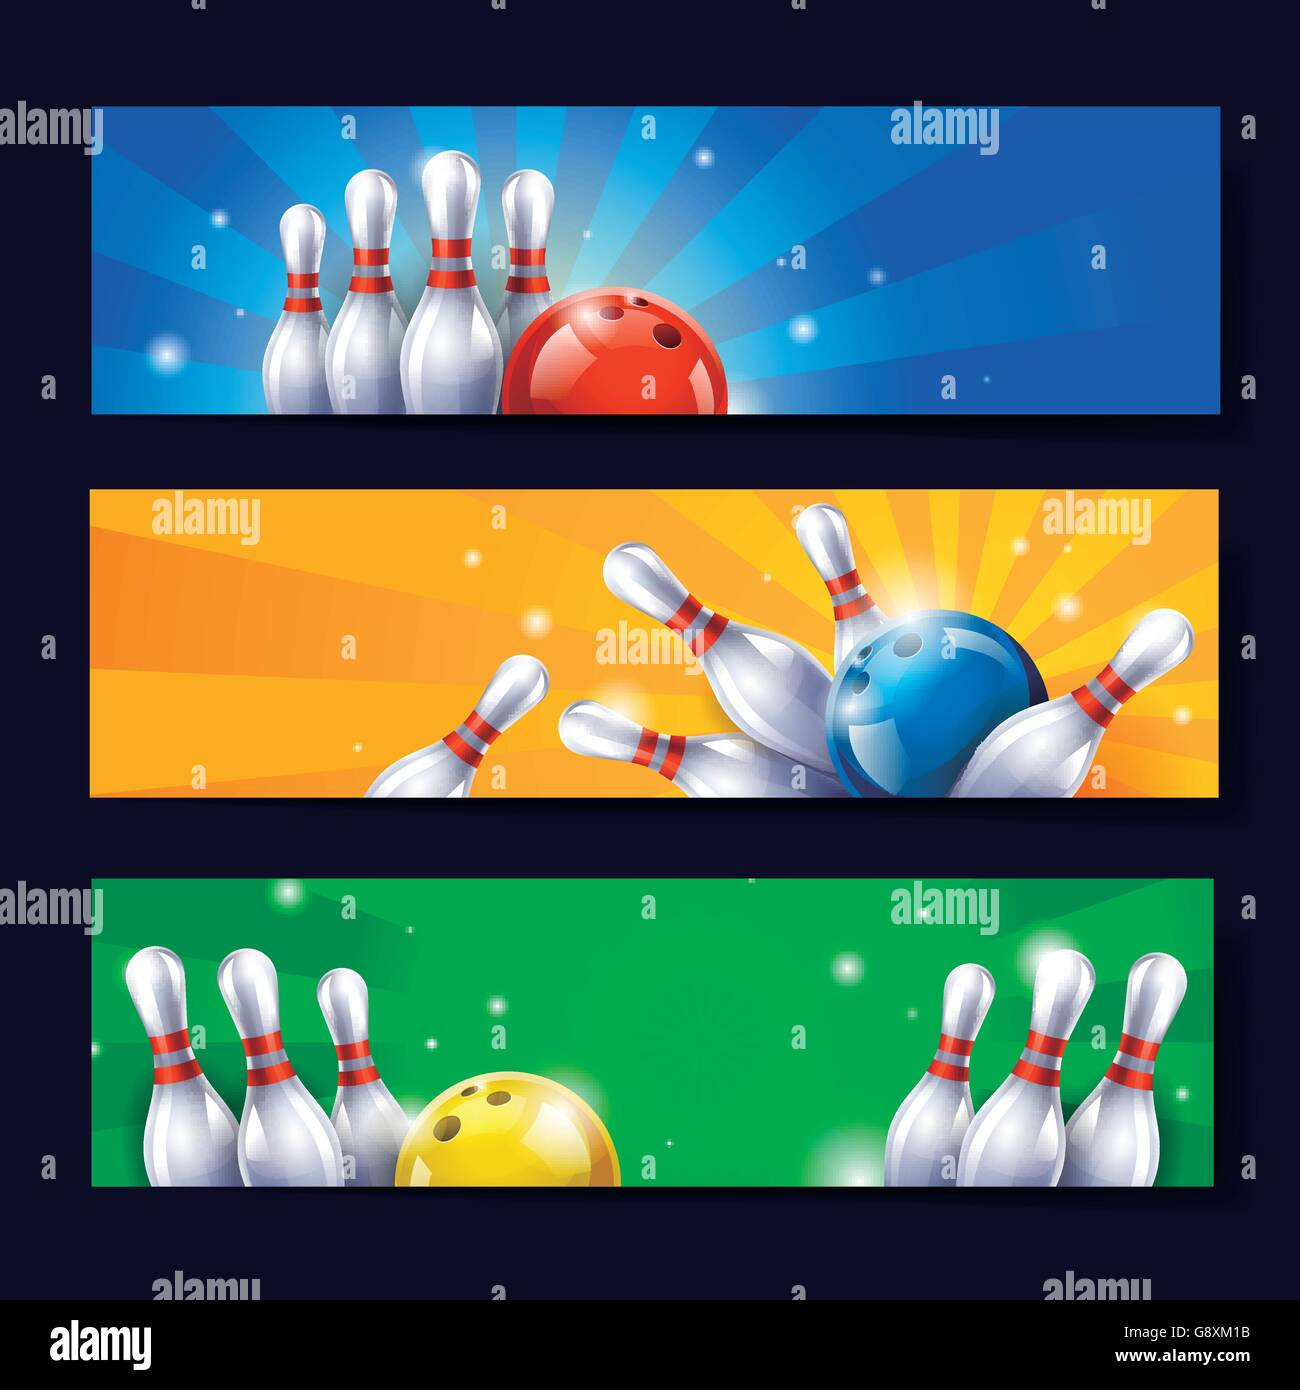 attractive bowling banner template design in bright colors stock